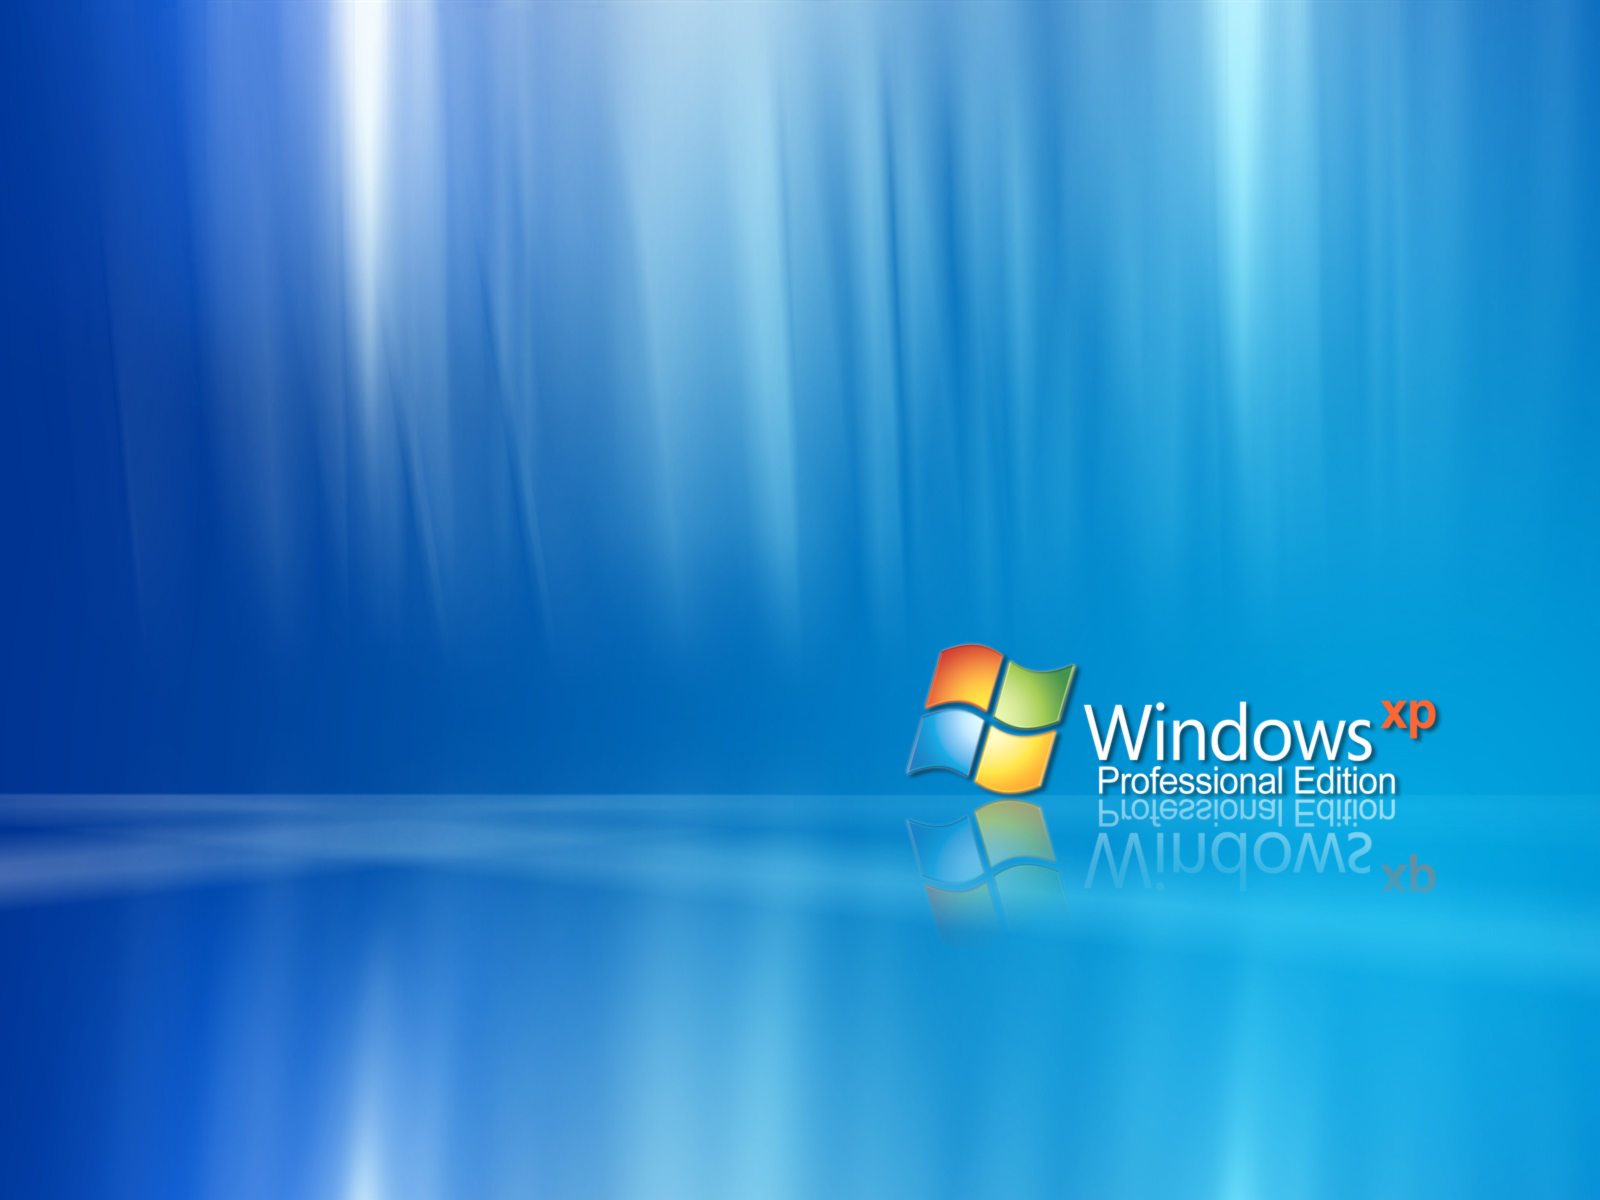 Windows Xp Wallpaper Download